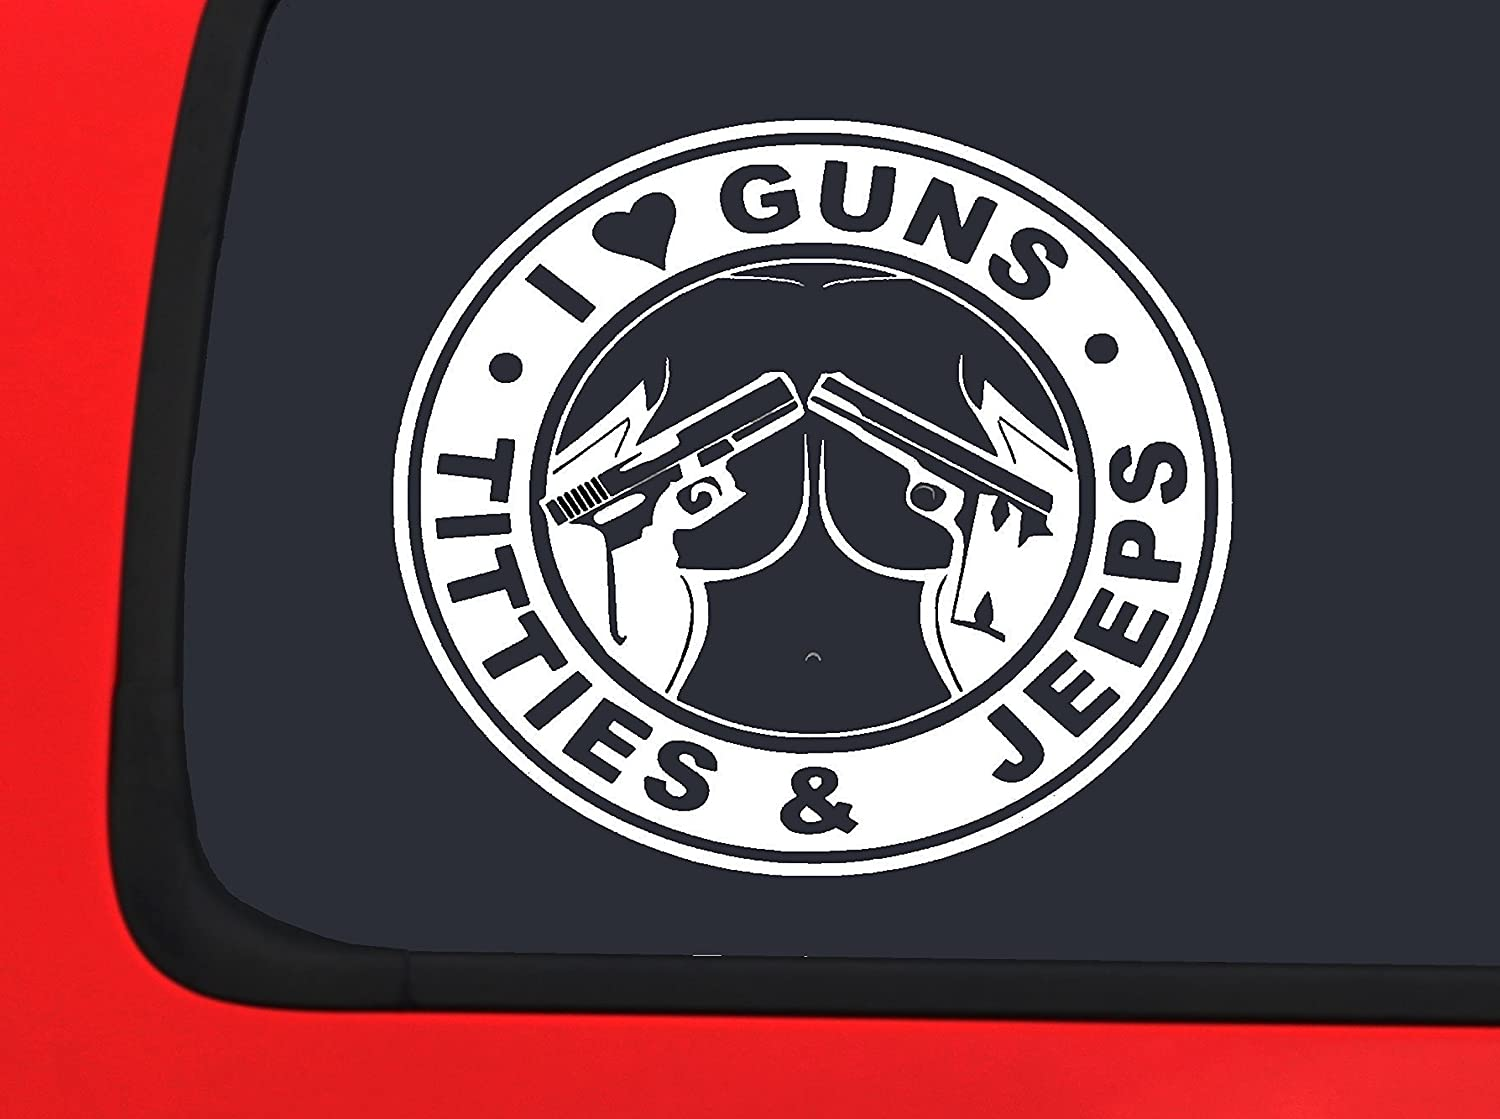 Jeep 4x4 Windshield Decal - This Side Up! (White)